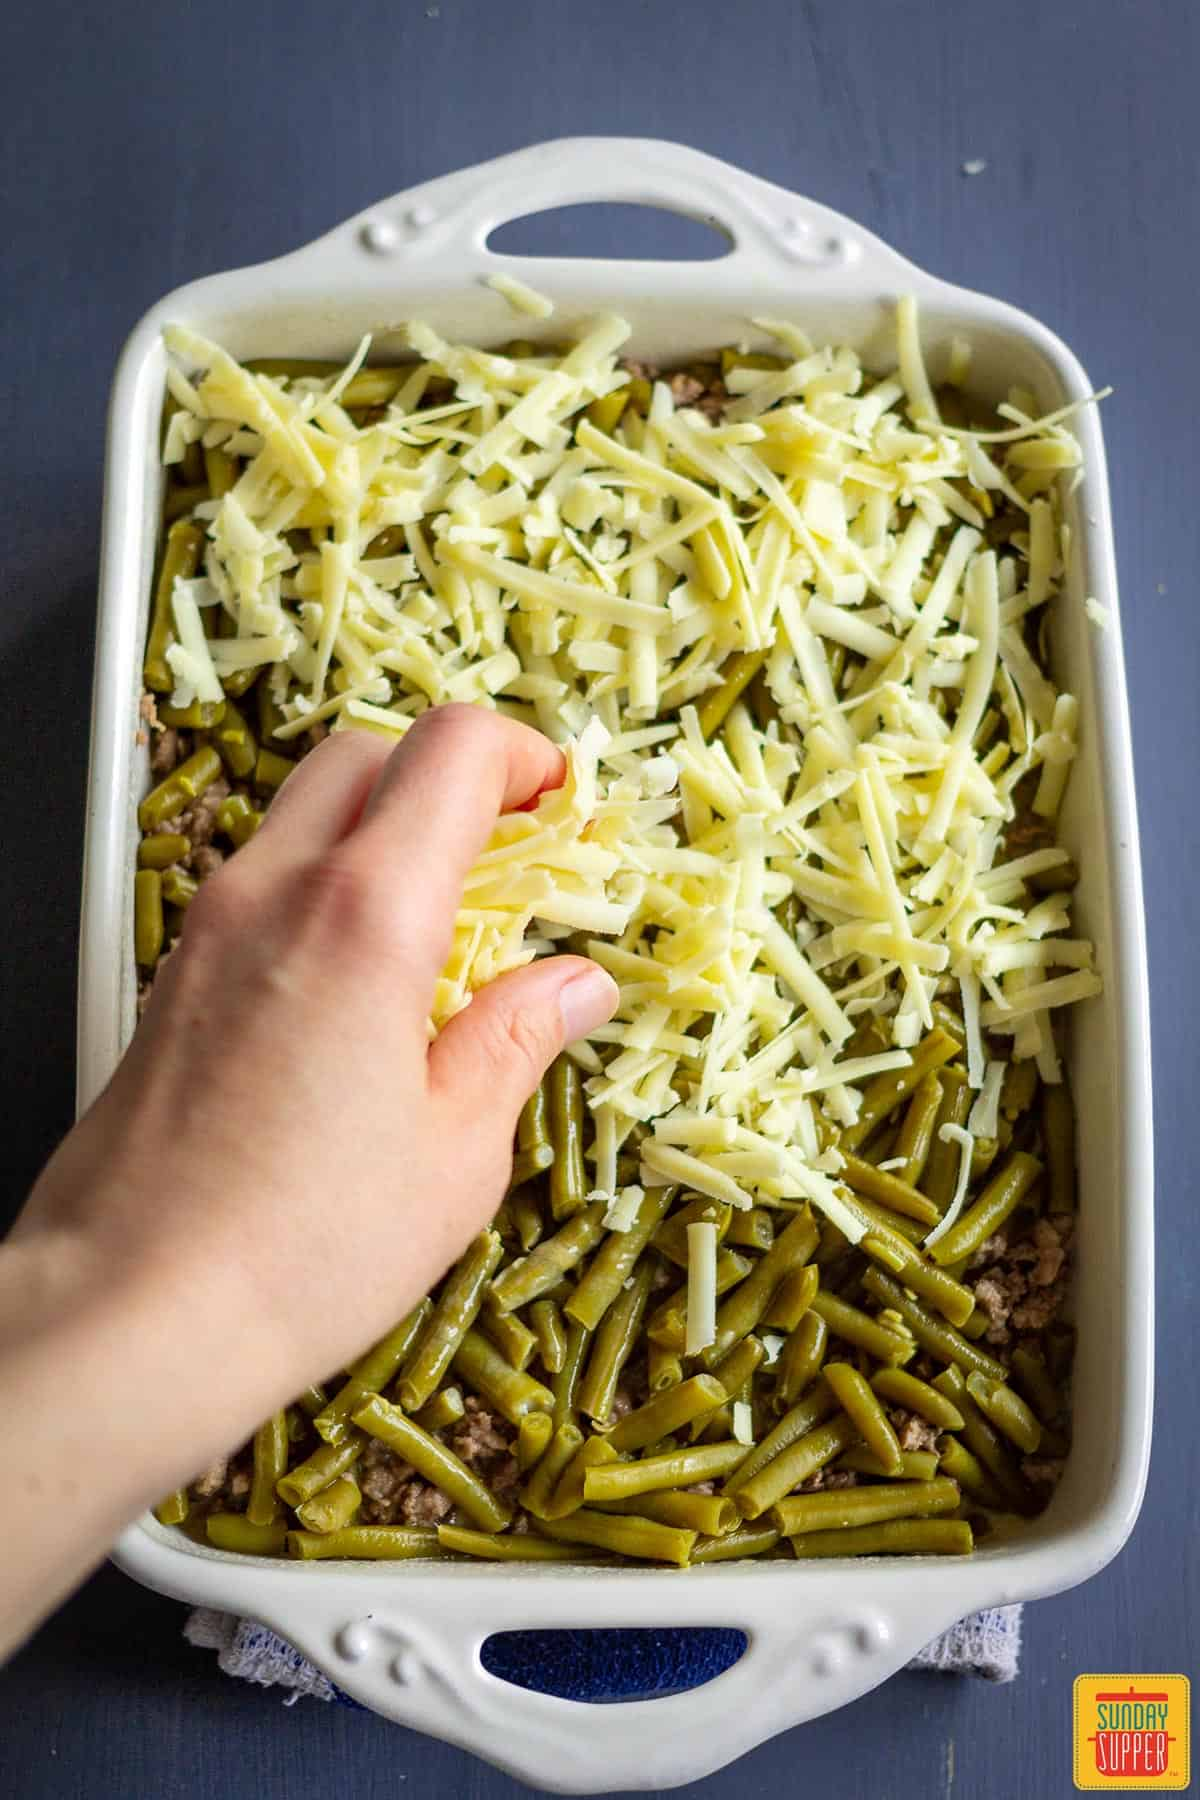 Adding grated white cheddar to casserole dish of green beans and ground beef